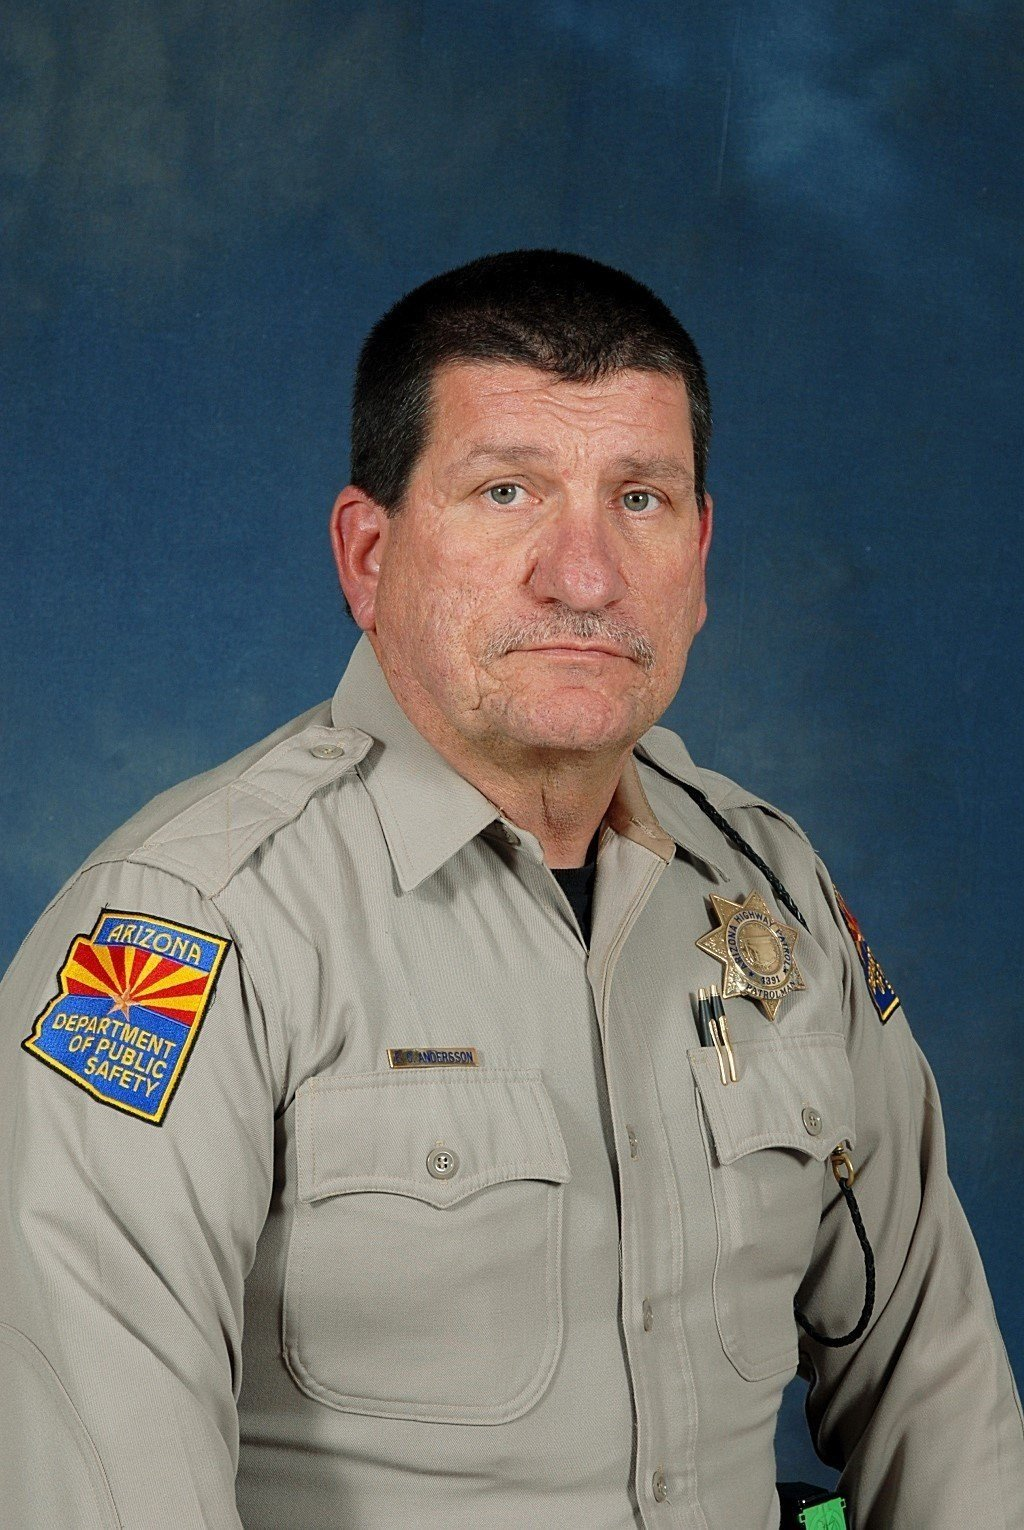 Arizona Trooper Ed Andersson was hospitalized after an assailant attacked him on a highway. A good Samaritan shot the assailant. (Source: Arizona Department of Public Safety)